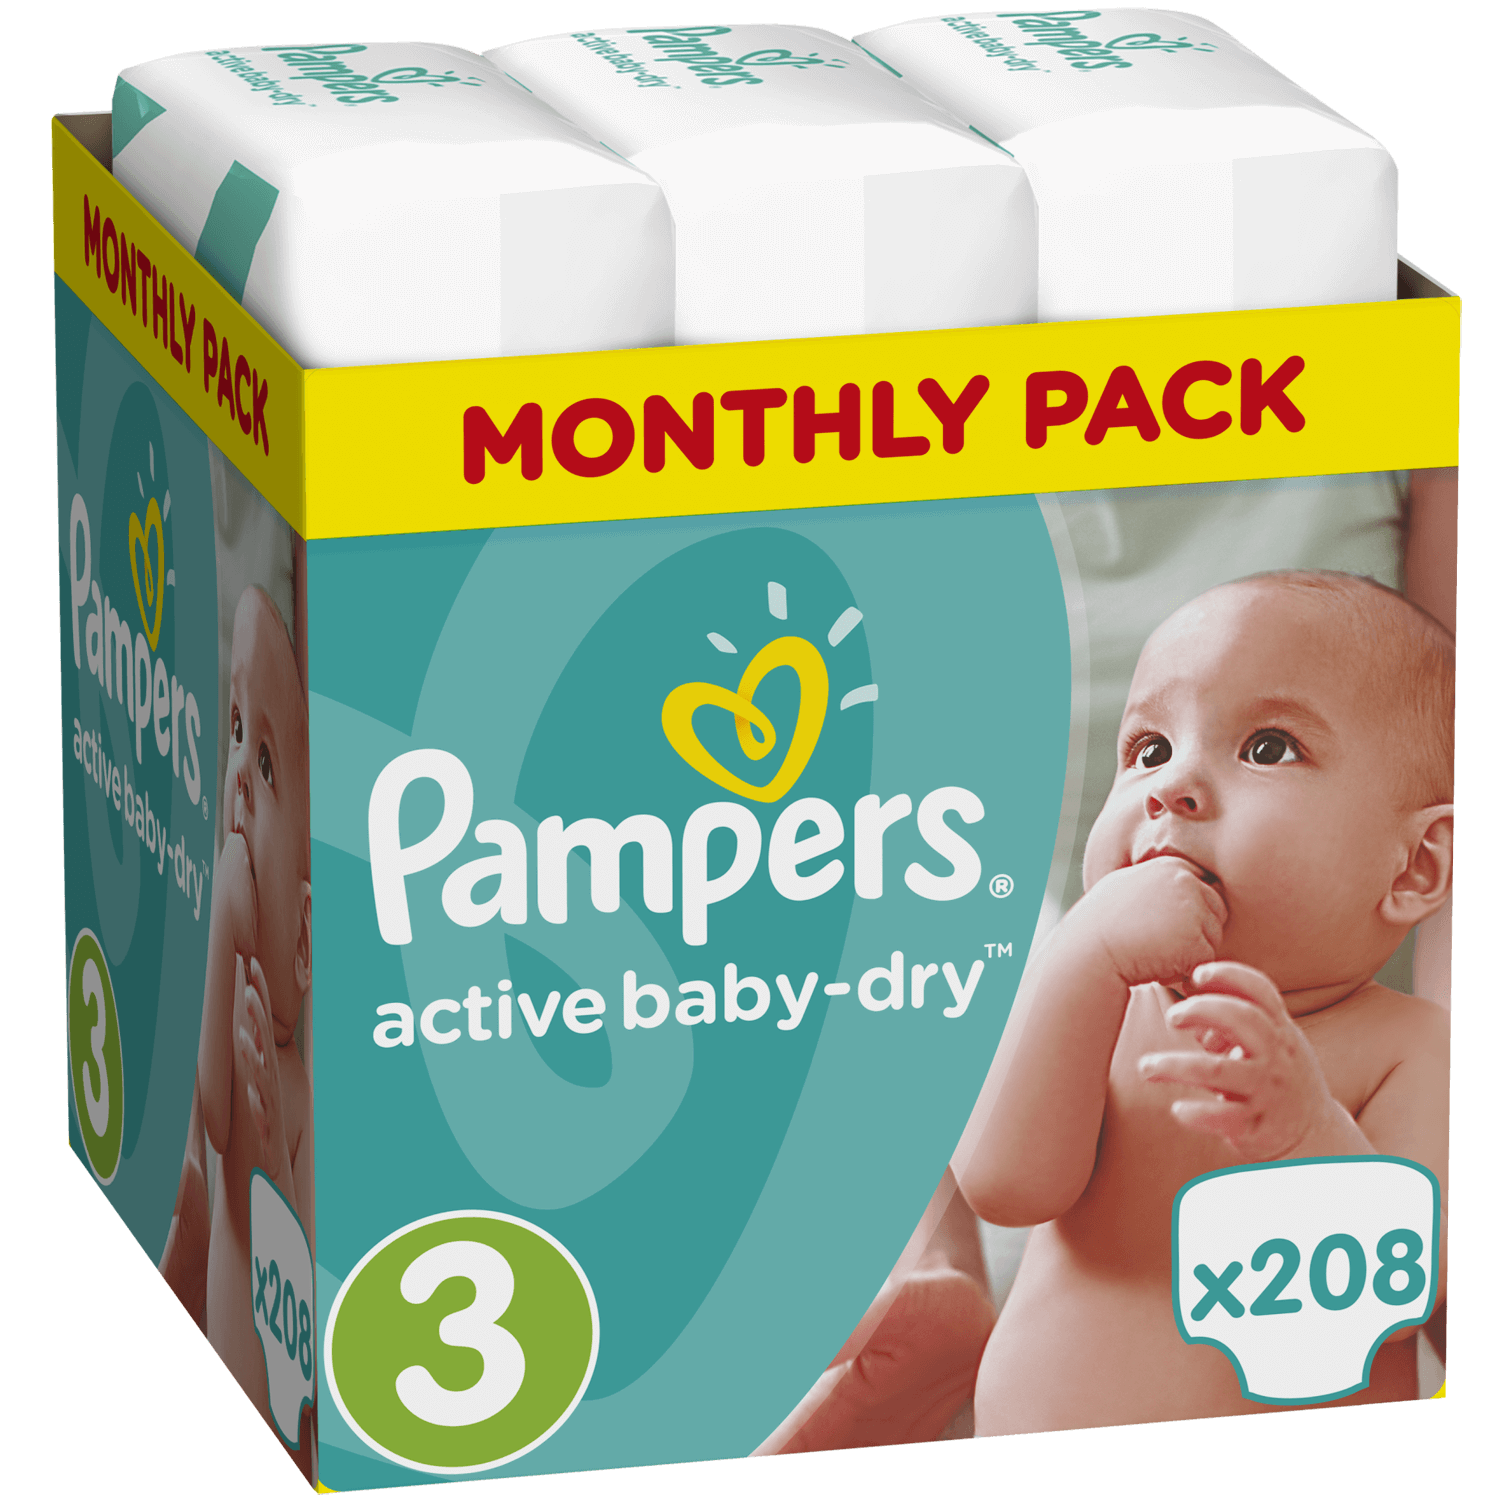 Pampers Active Baby Dry Monthly Pack No3 (5-9kg) 208 πάνες, μόνο 0,19€ / πάνα μητέρα παιδί   περιποίηση για το μωρό   πάνες για το μωρό